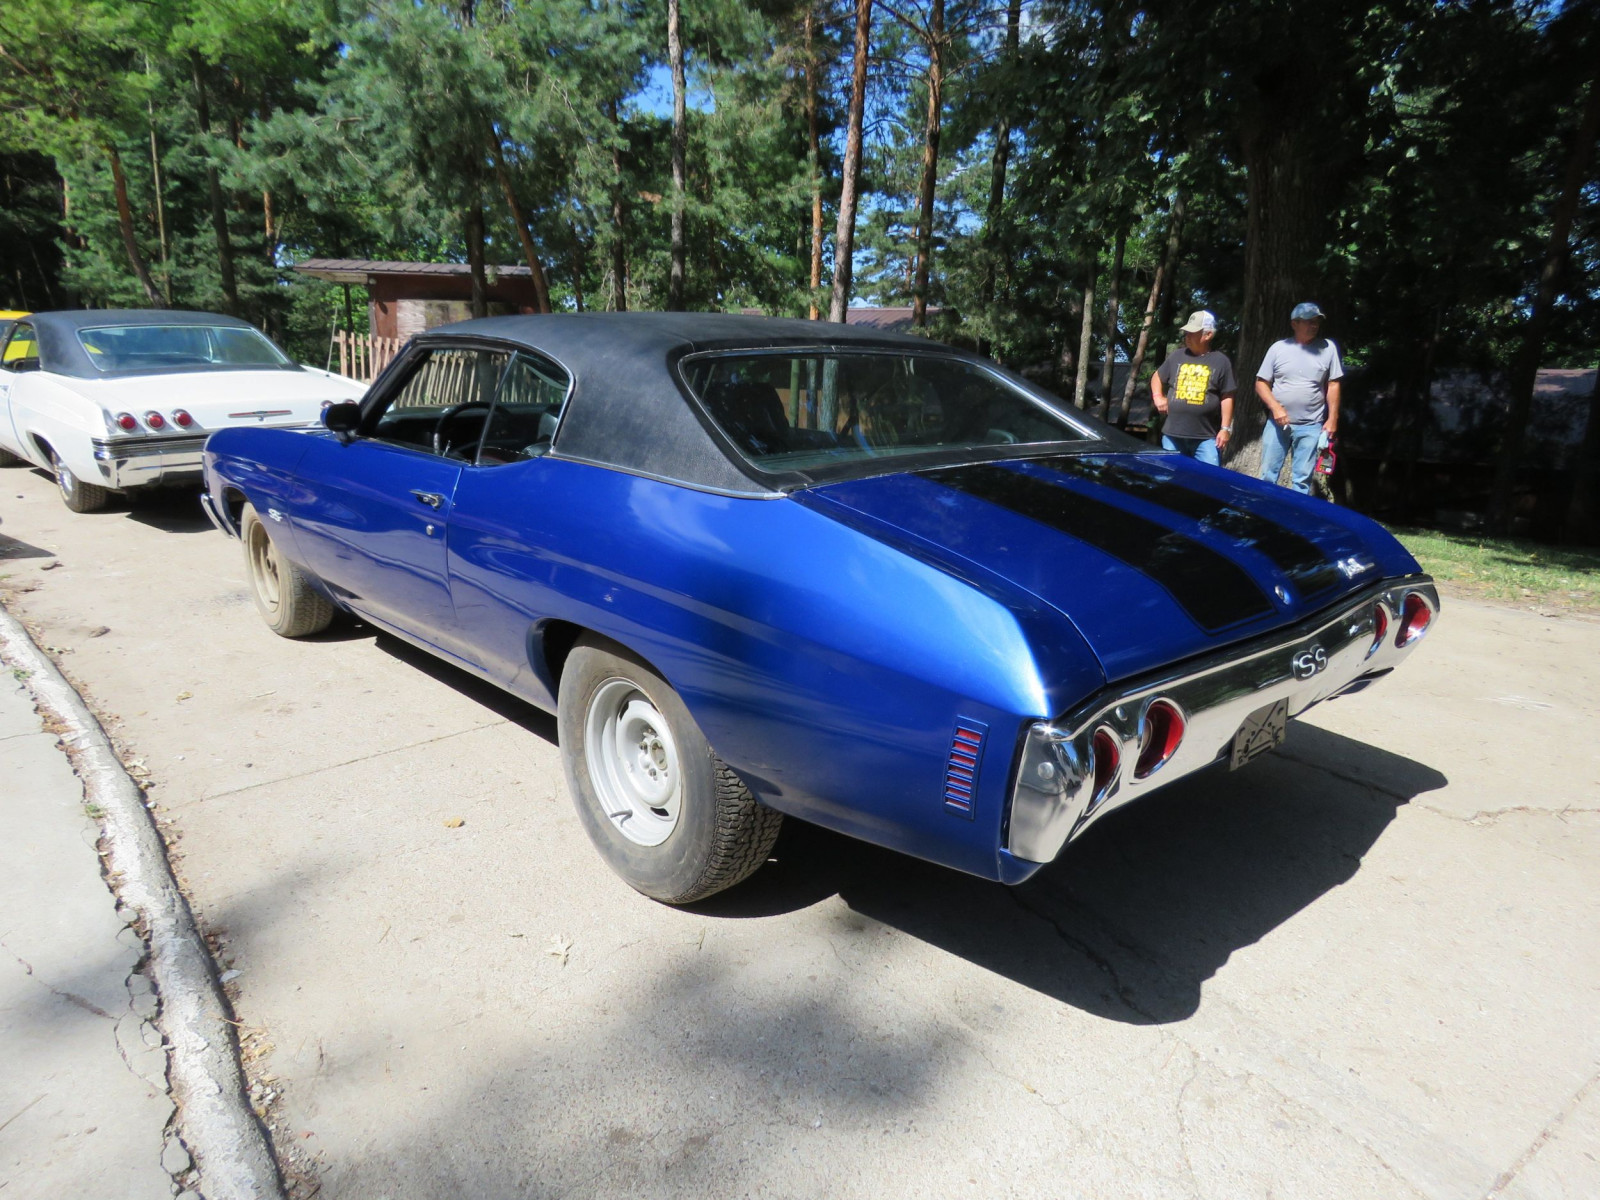 1972 Chevrolet Chevelle SS 2dr HT - Image 6